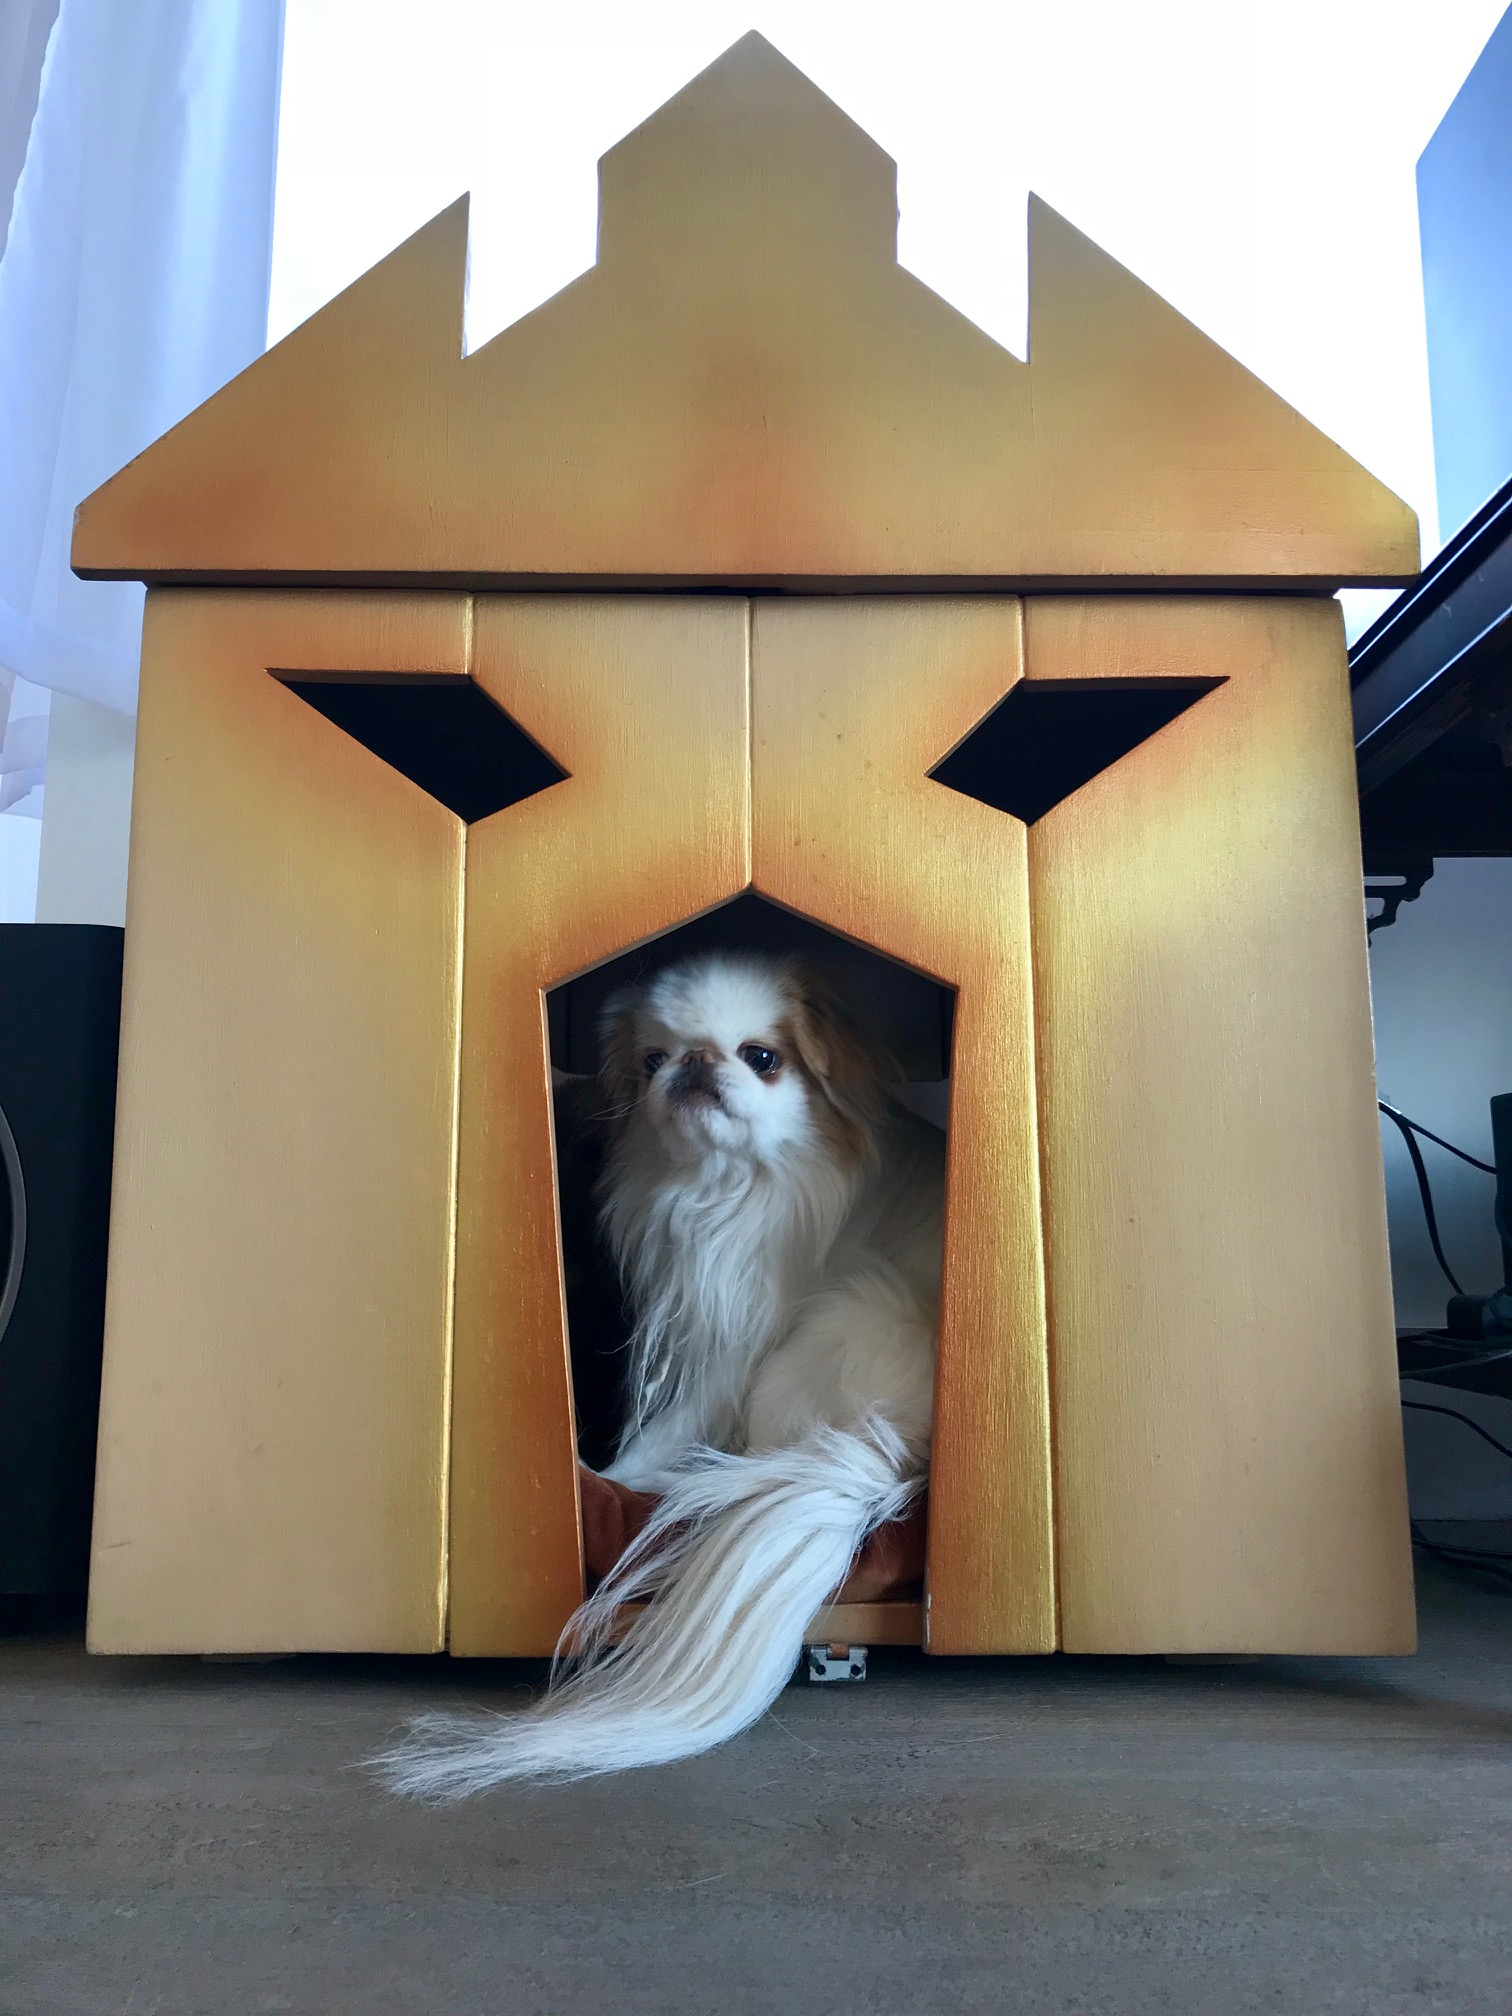 Michelle built this dog house for her dog.